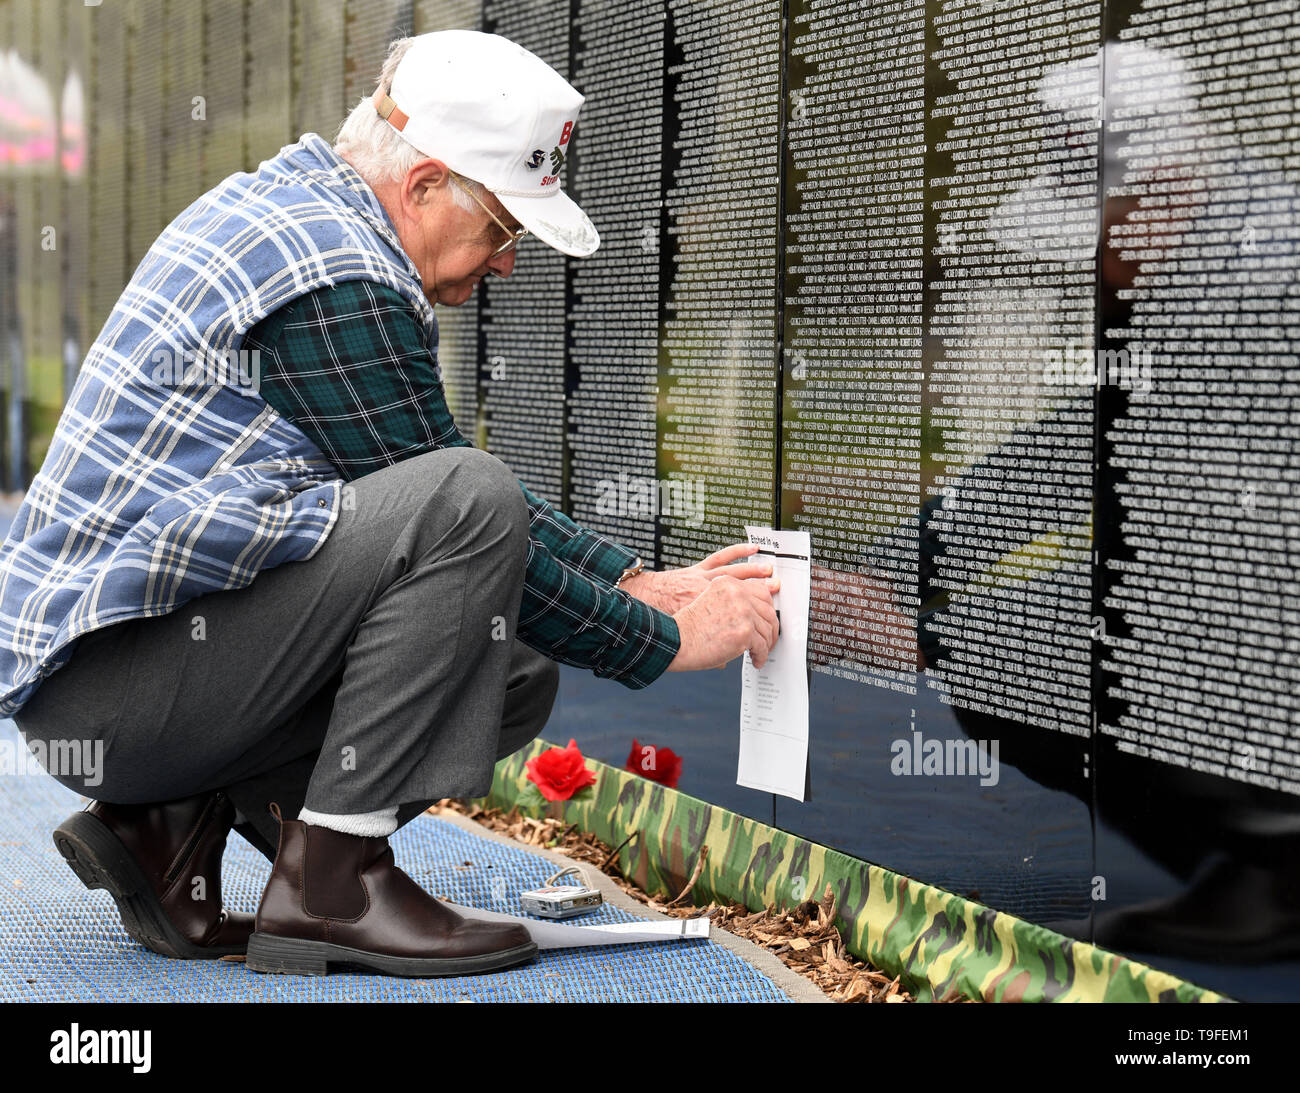 Racine, Wisconsin, USA. 18th May, 2019. Andris Vinakmens etches the names of his high school classmate Tony Albasio at the Moving Wall, a half-size replica of the Vietnam Veterans Memorial, in Racine, Wisconsin, Saturday May 18, 2019. Another classmate, Ed Wyatt, also died in Vietnam. The three served on B-52 bombers. Forty-seven soldiers from Racine were killed during the war. The Moving Wall has been touring the United States for more than 30 years. Credit: Mark Hertzberg/ZUMA Wire/Alamy Live News - Stock Image